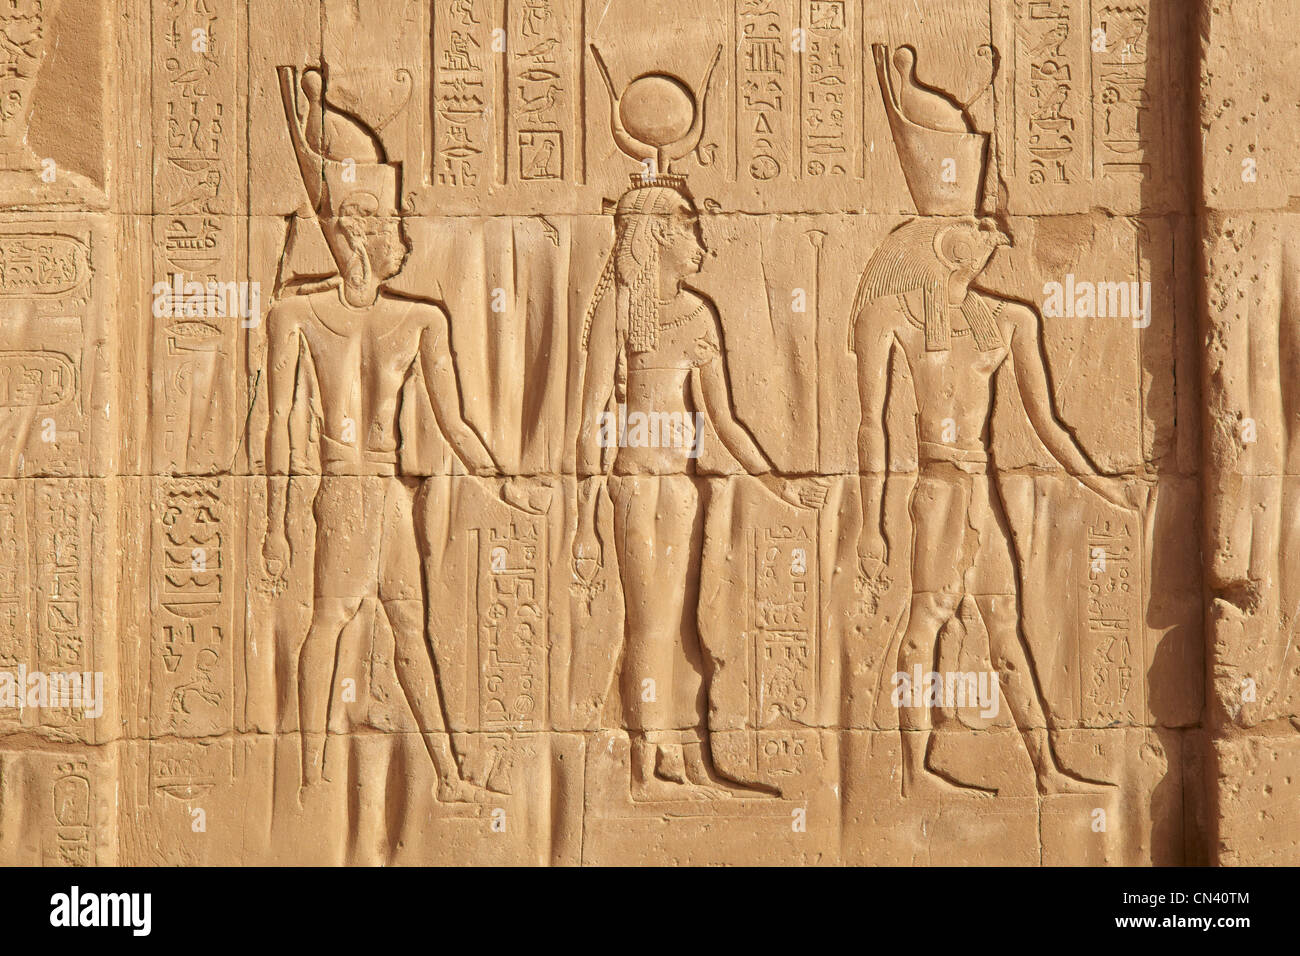 Egypt - Edfu, Temple of Horus, detail, relief of the wall inside the Horus Temple, figures of Horus, Isis and Osiris - Stock Image